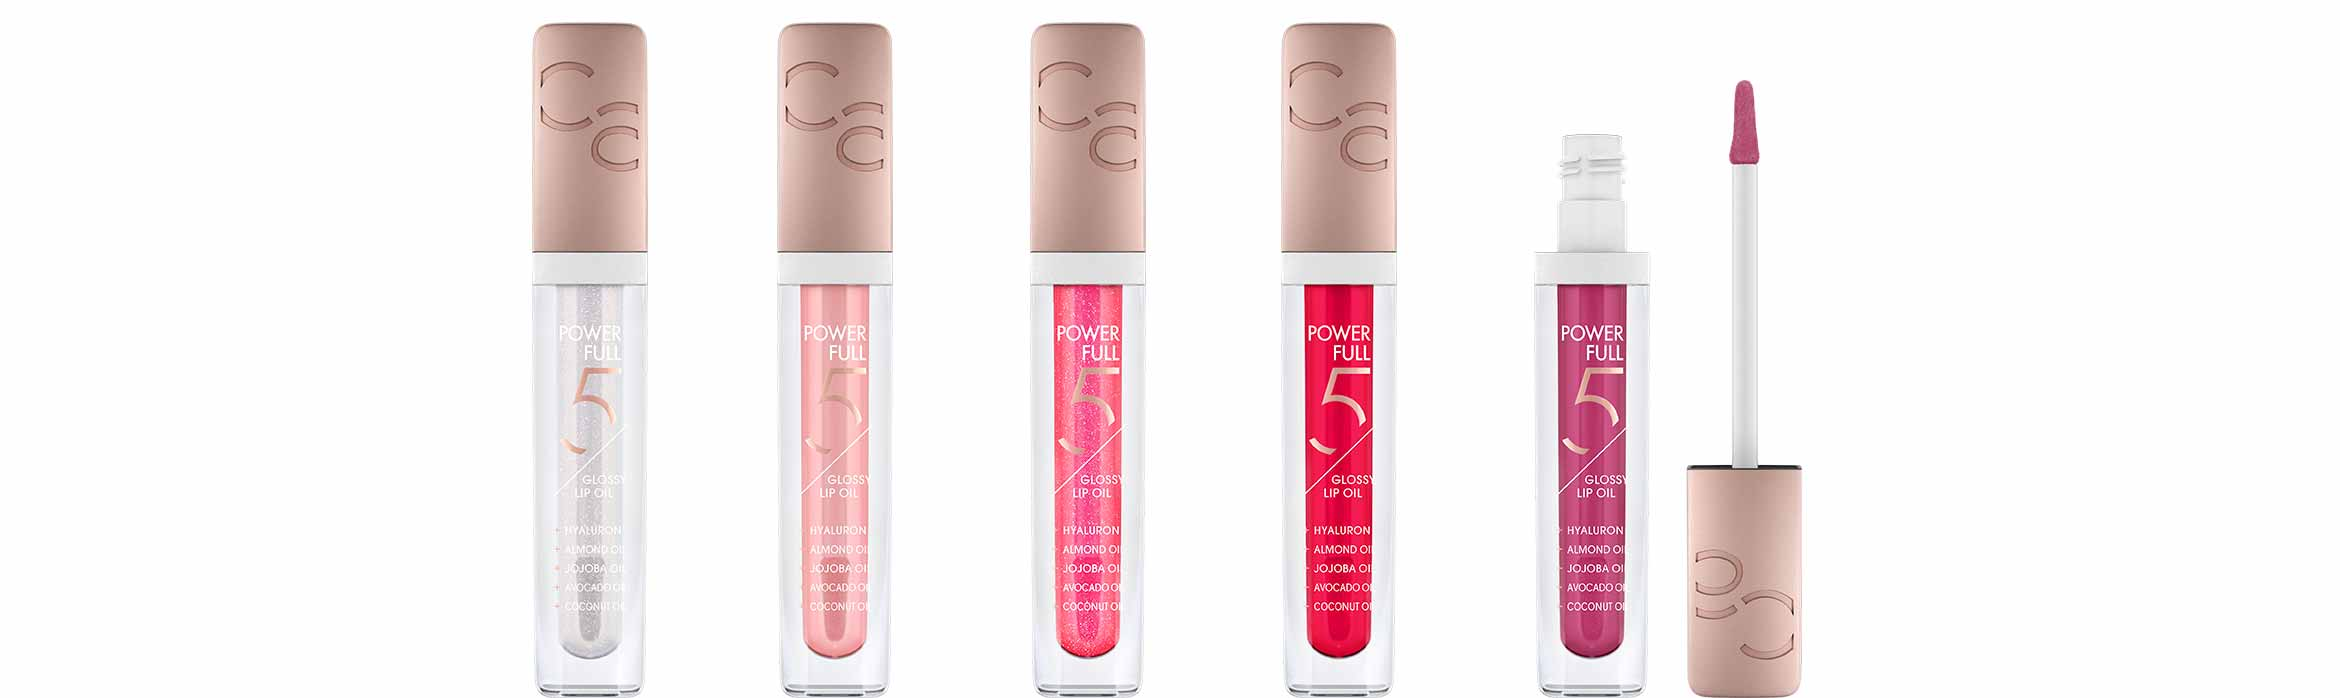 catrice power full 5 glossy lip oil